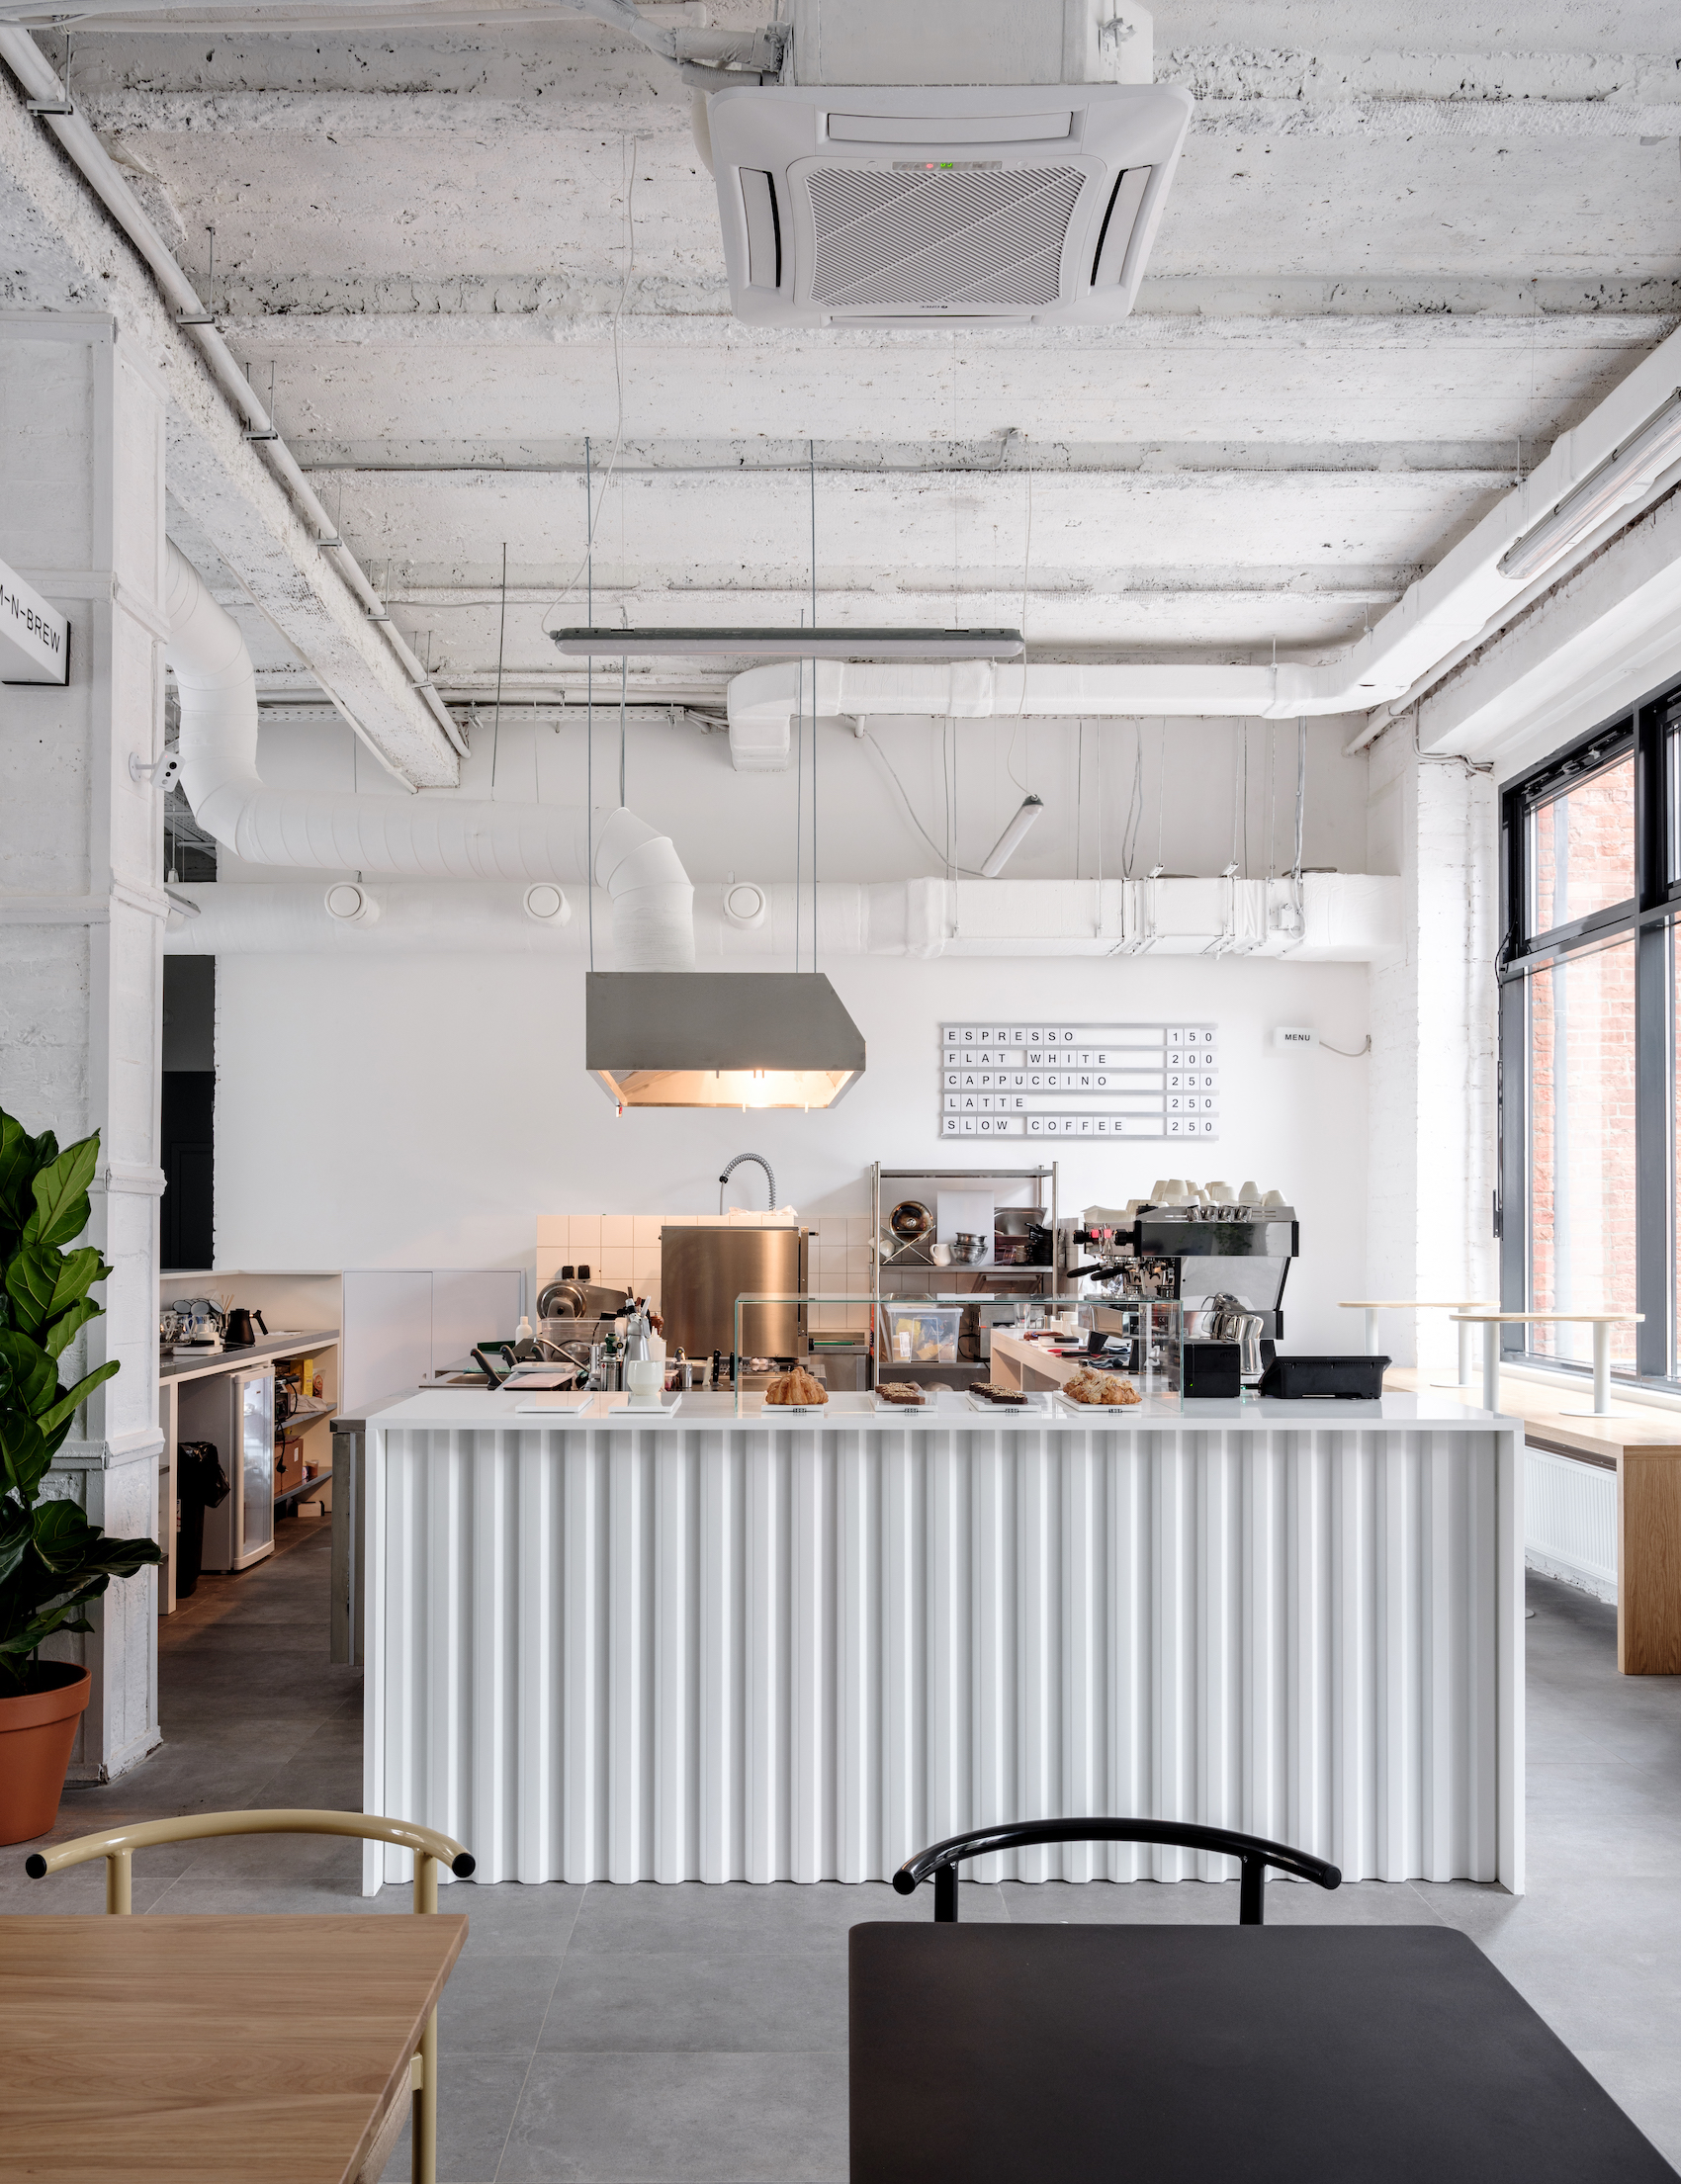 Bloom-n-Brew in Moscow, Russia by Maxim Maximov from Asketik Studio